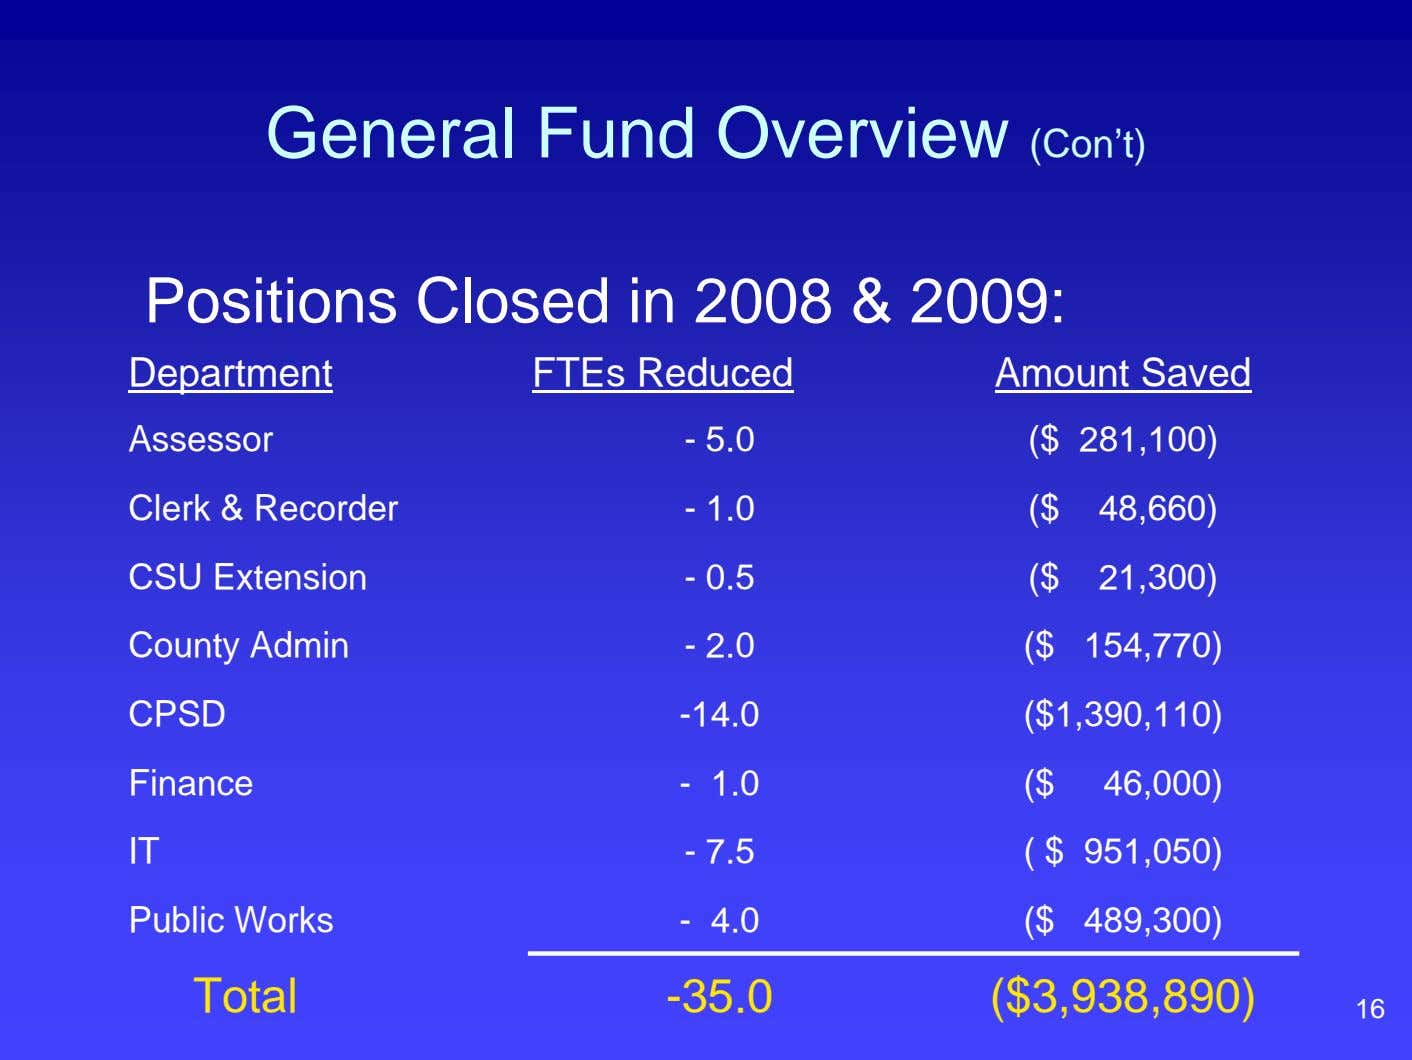 General Fund Overview (Con't) Positions Closed in 2008 & 2009: Department FTEs Reduced Amount Saved